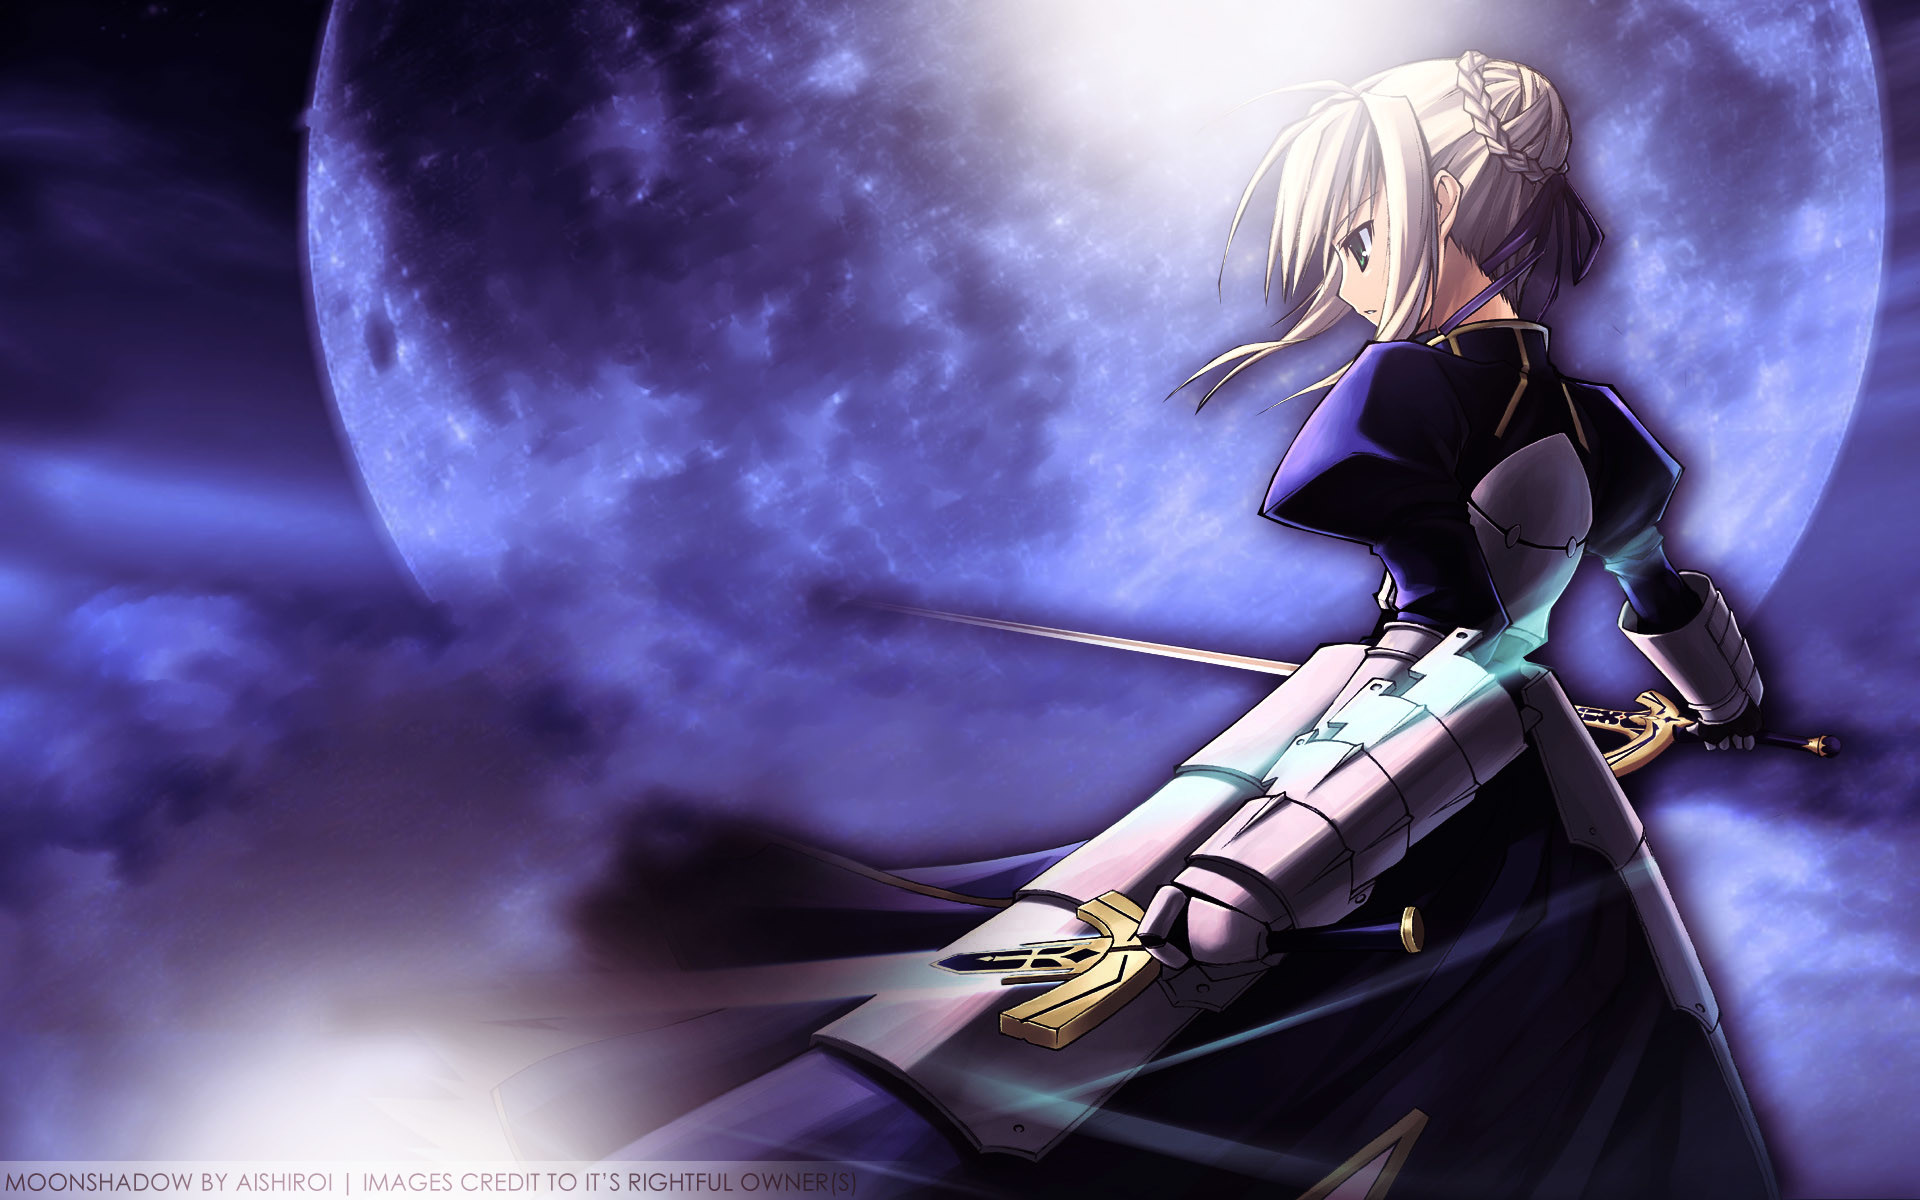 HD Wallpaper and background photos of Saber for fans of Fate Stay Night  images.